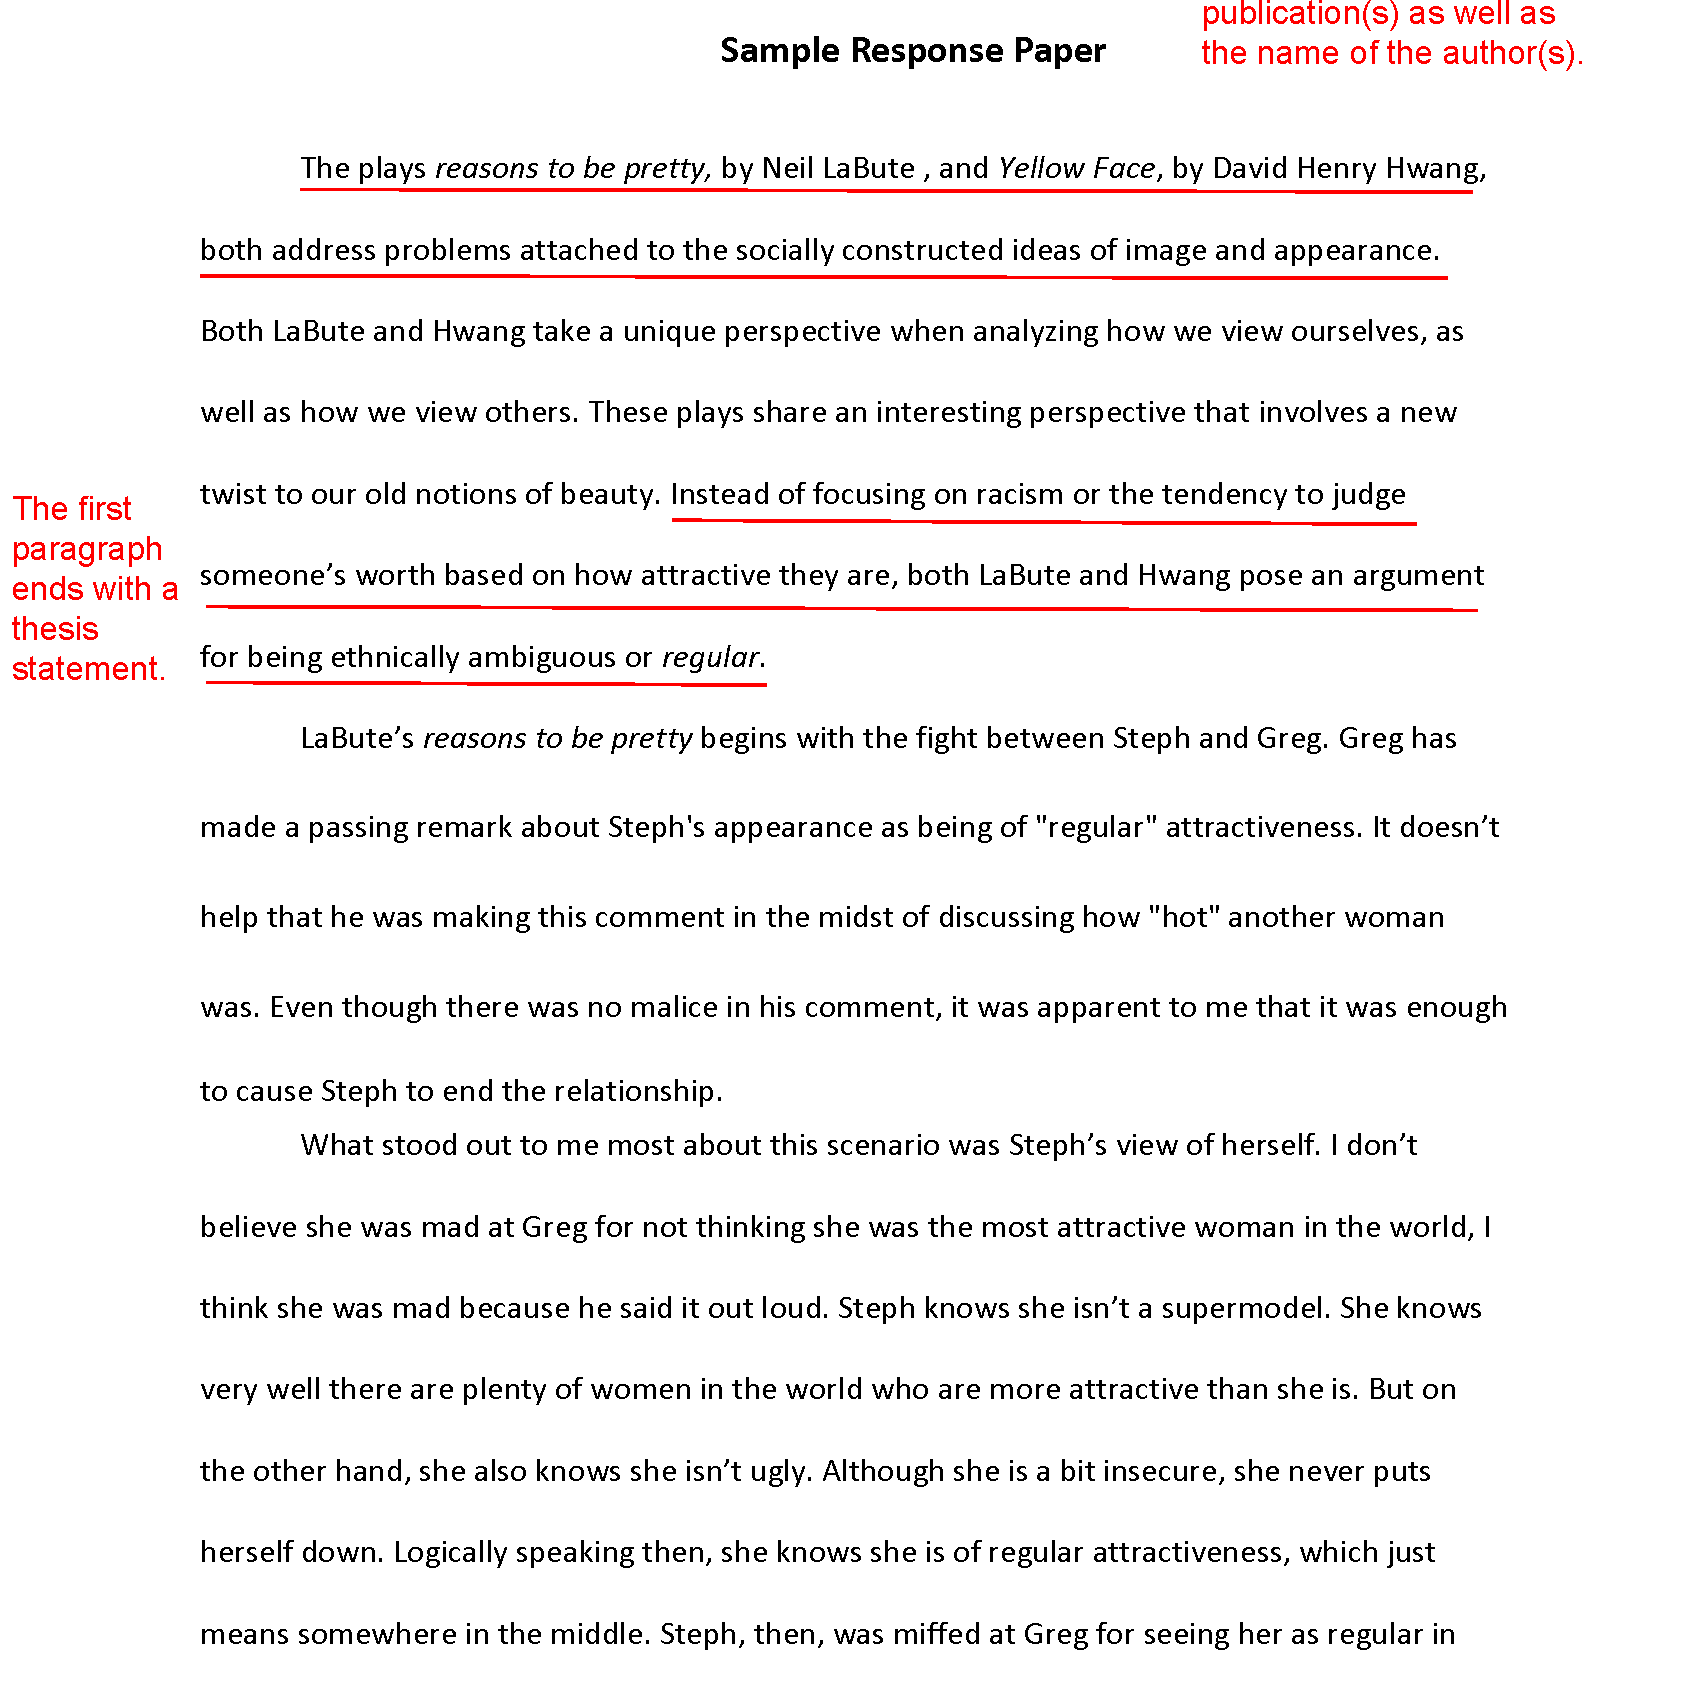 Science Essay Questions  Essay Writing High School also High School Essay Examples How To Write A Response Paper Controversial Essay Topics For Research Paper